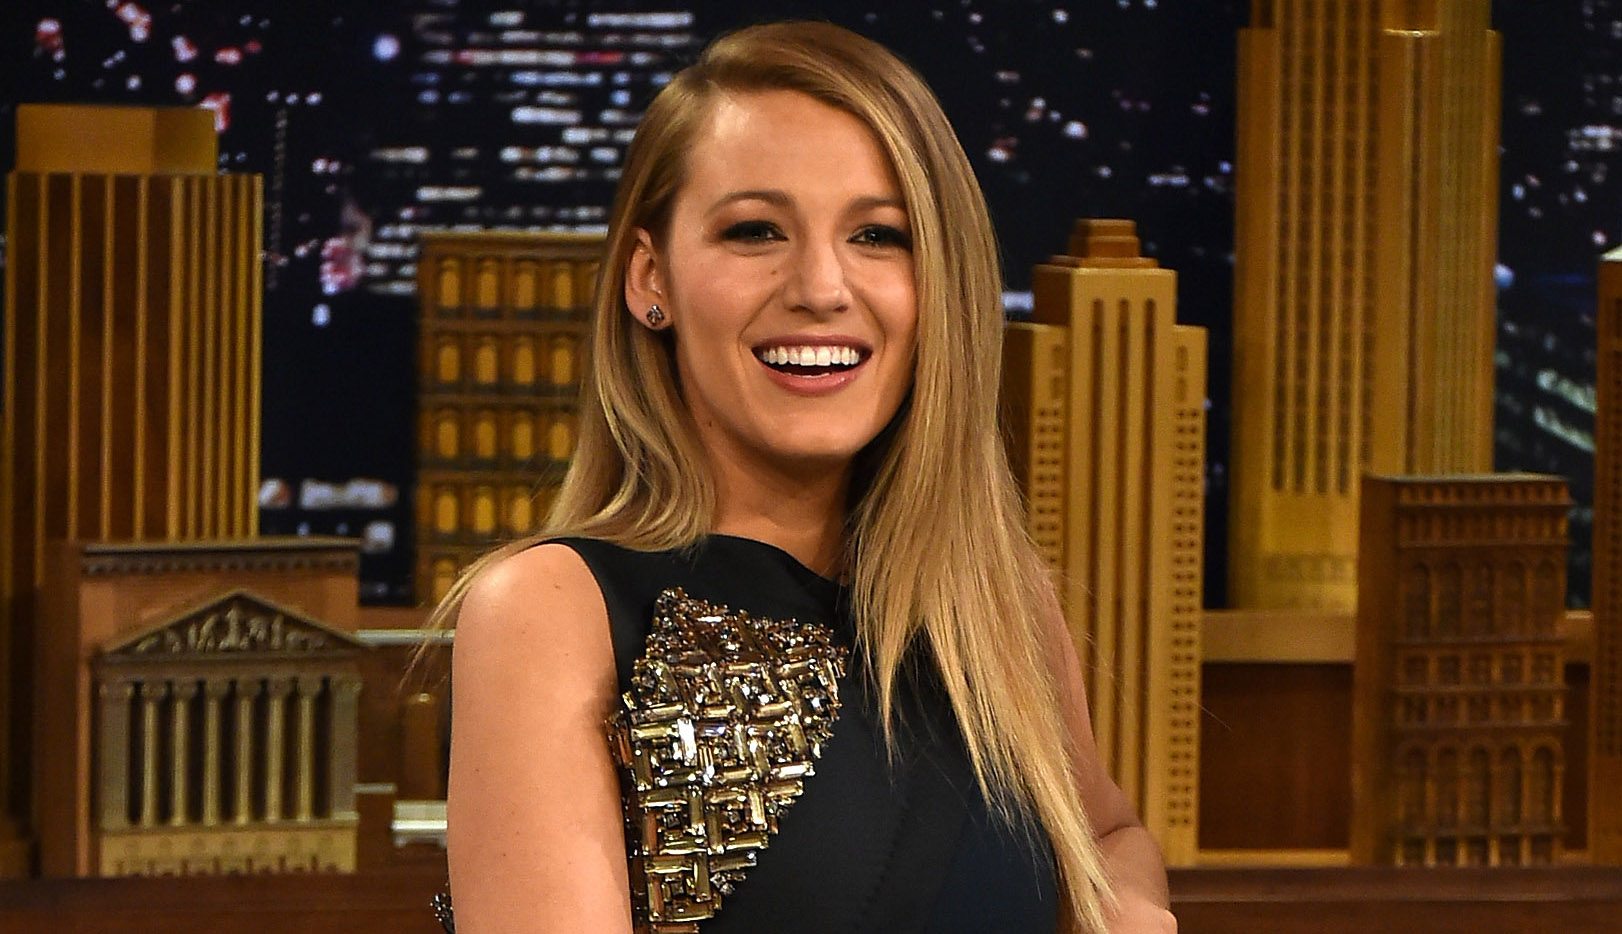 pictures Blake Lively Shuts Preserve, But Knows Exactly How She's Going To Take On The Hate Hate Haters